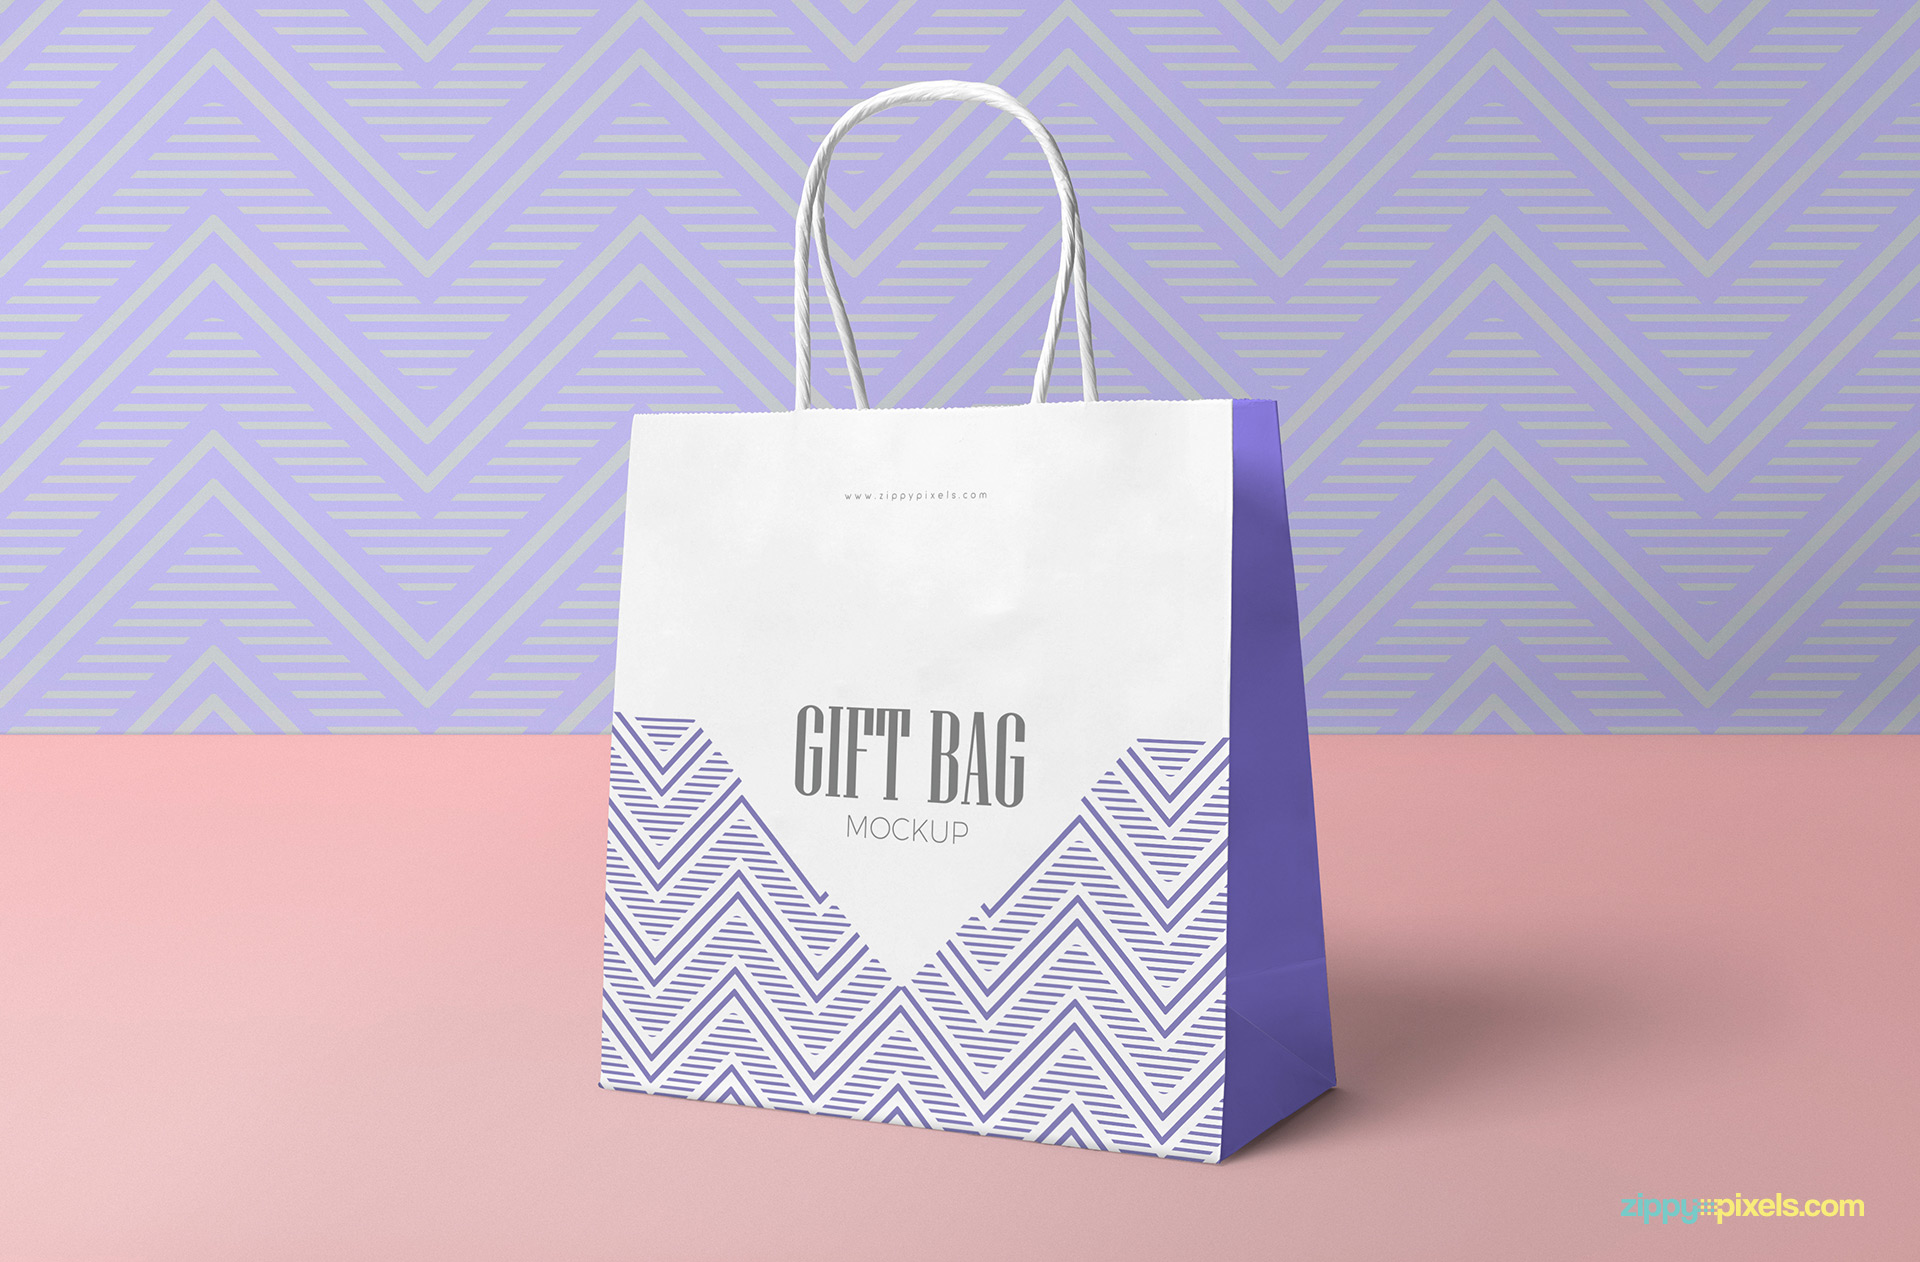 Changeable background of gift bag mockup.